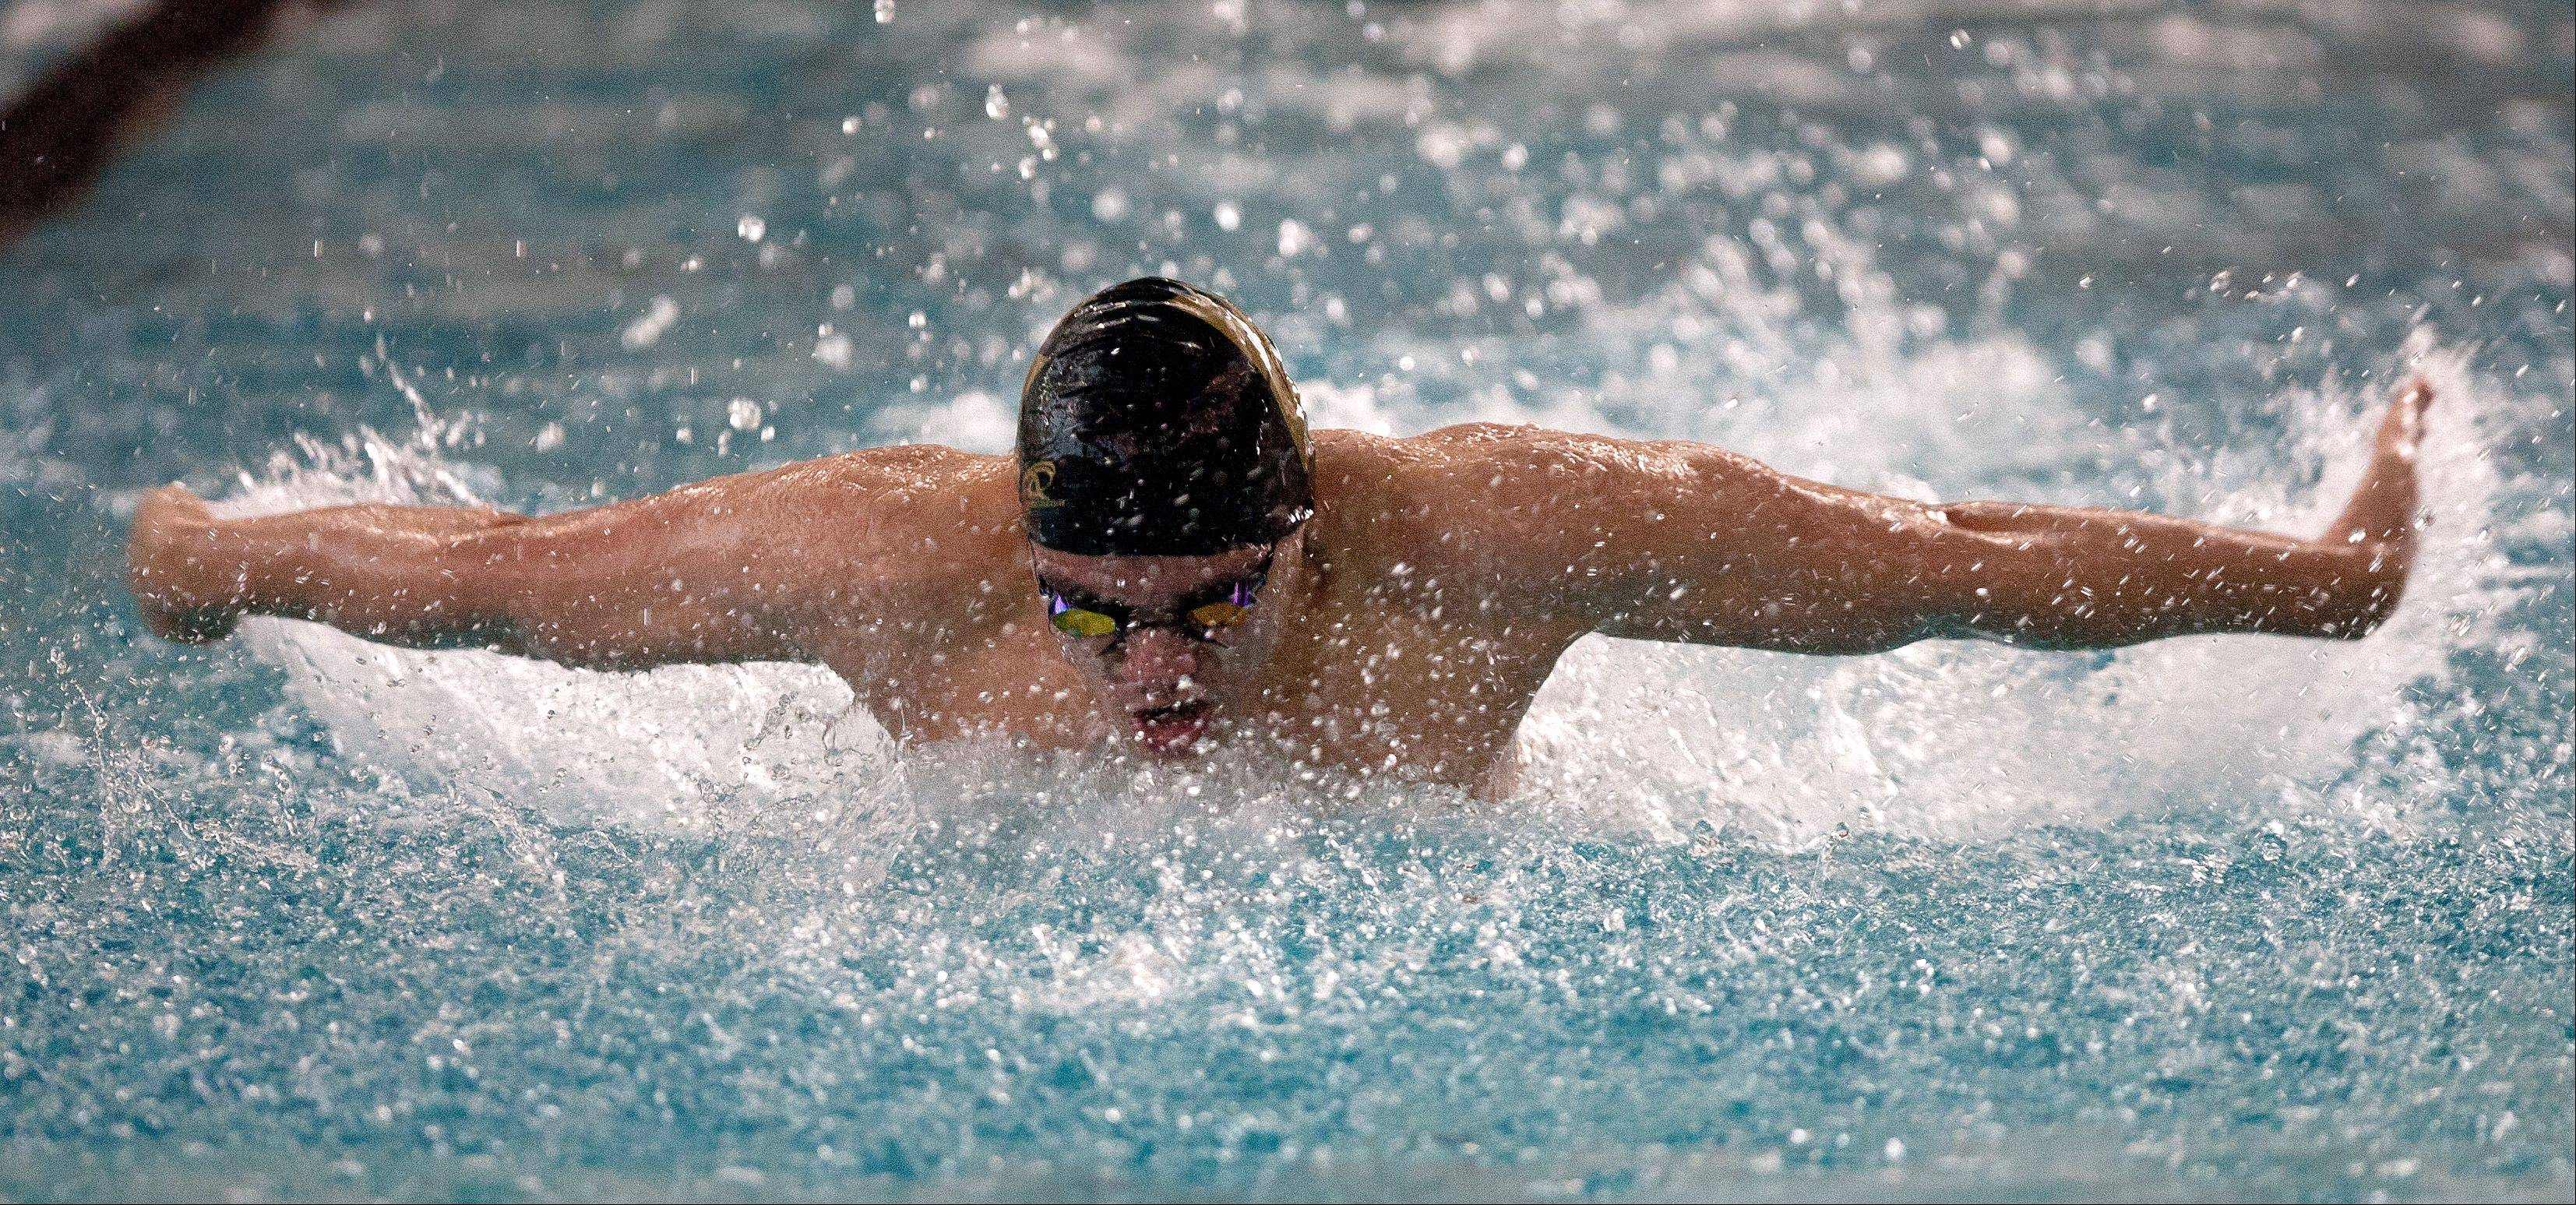 Stephen Ernst of Waubonsie Valley High School swims the 100 yard butterfly at the Mustang Swim and Dive Invite, hosted by Metea Valley High School.